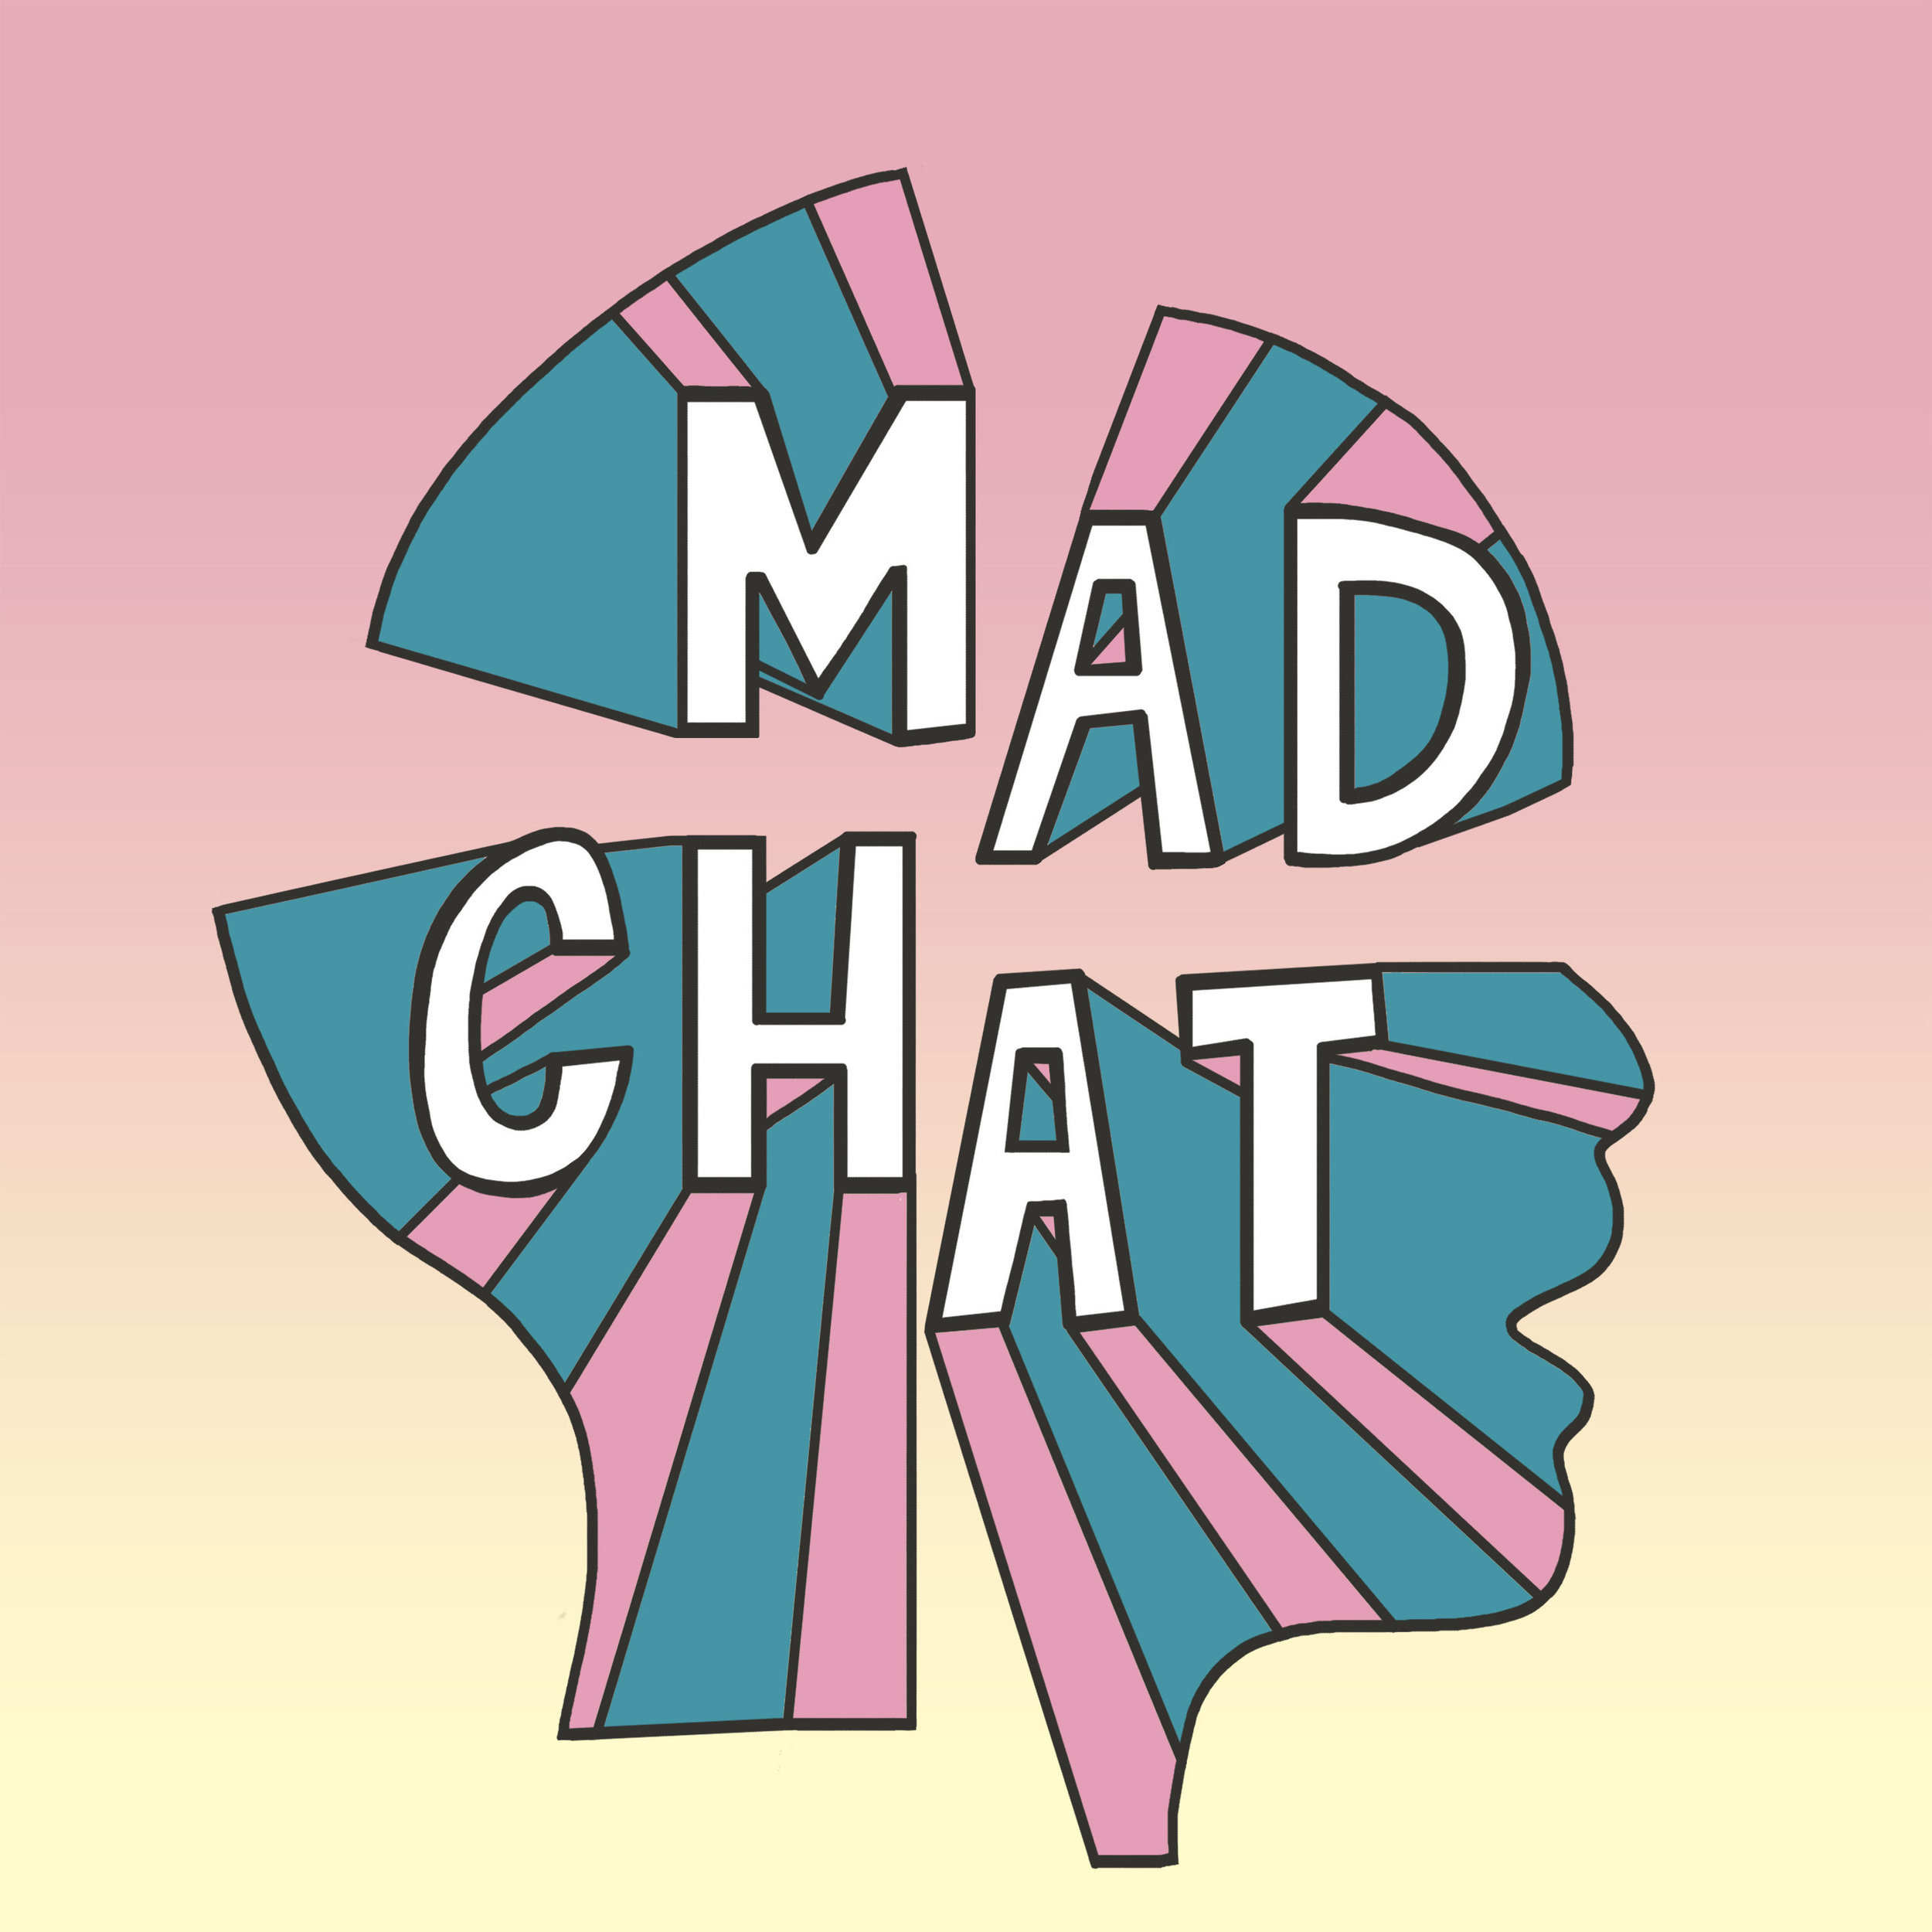 Mad Chat square logo